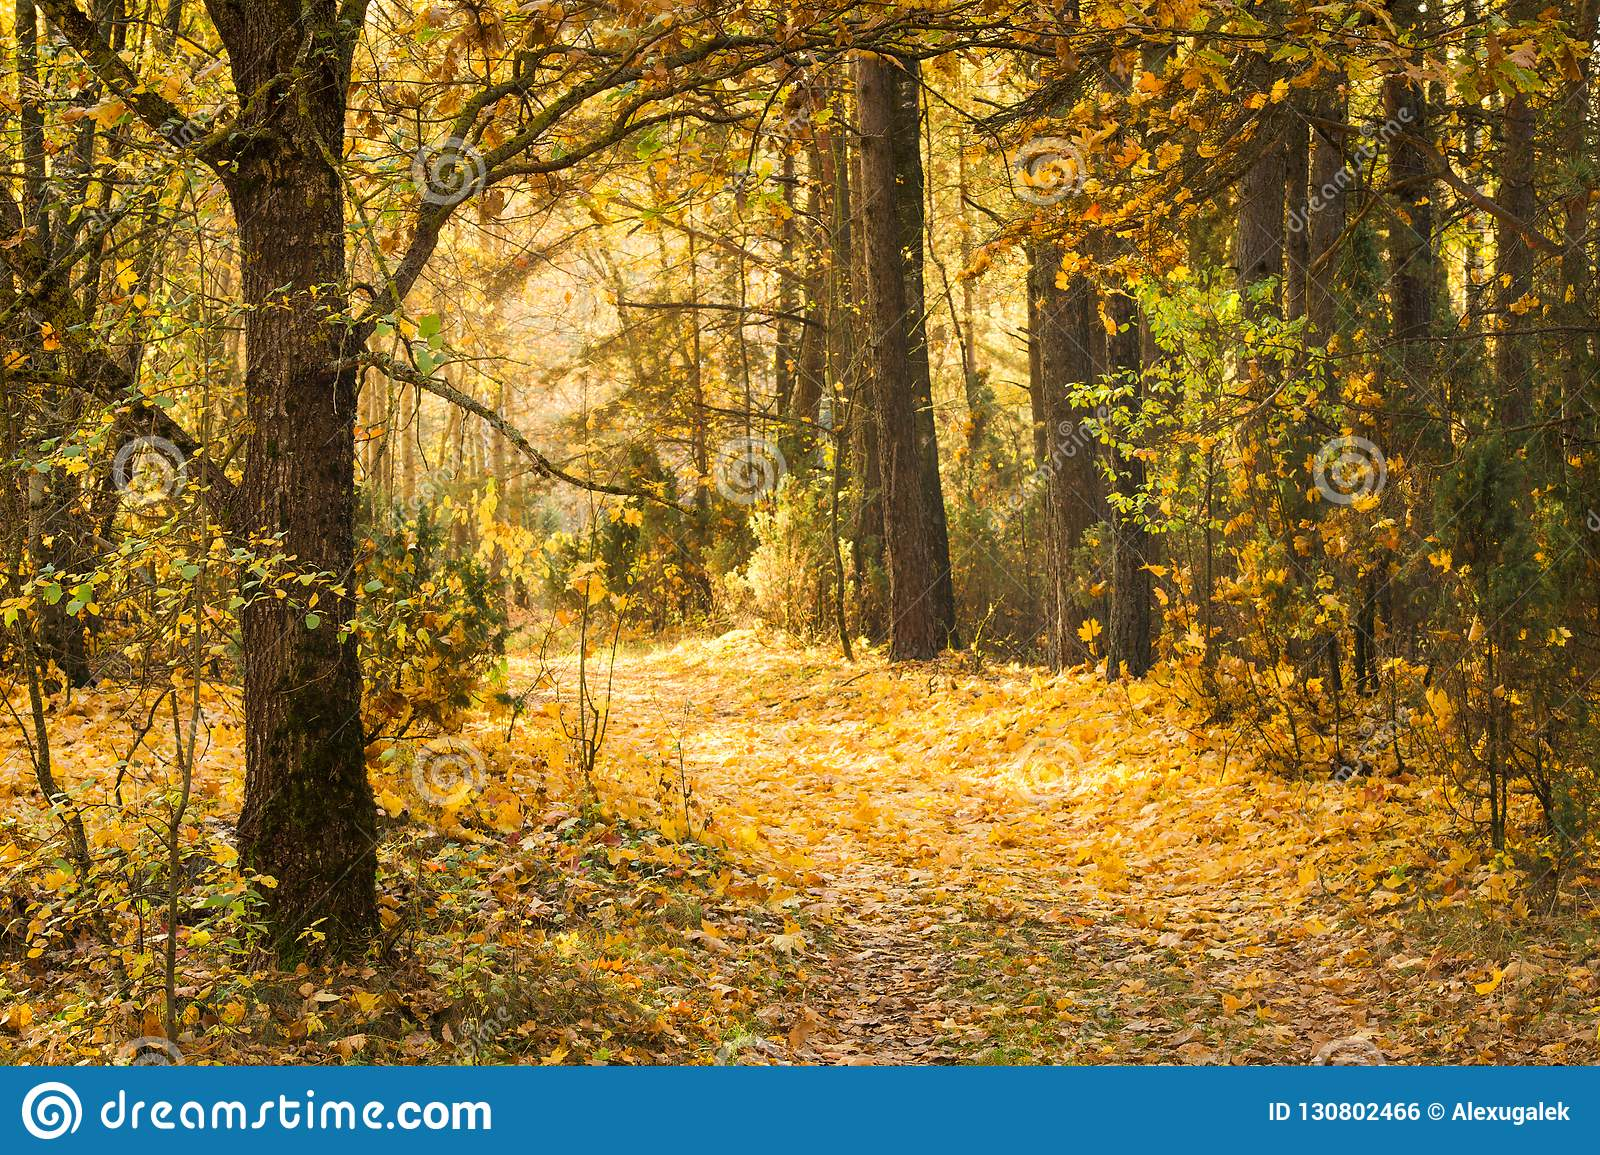 Path in autumn forest covered with yellow leaves. Beautiful calm fall landscape.